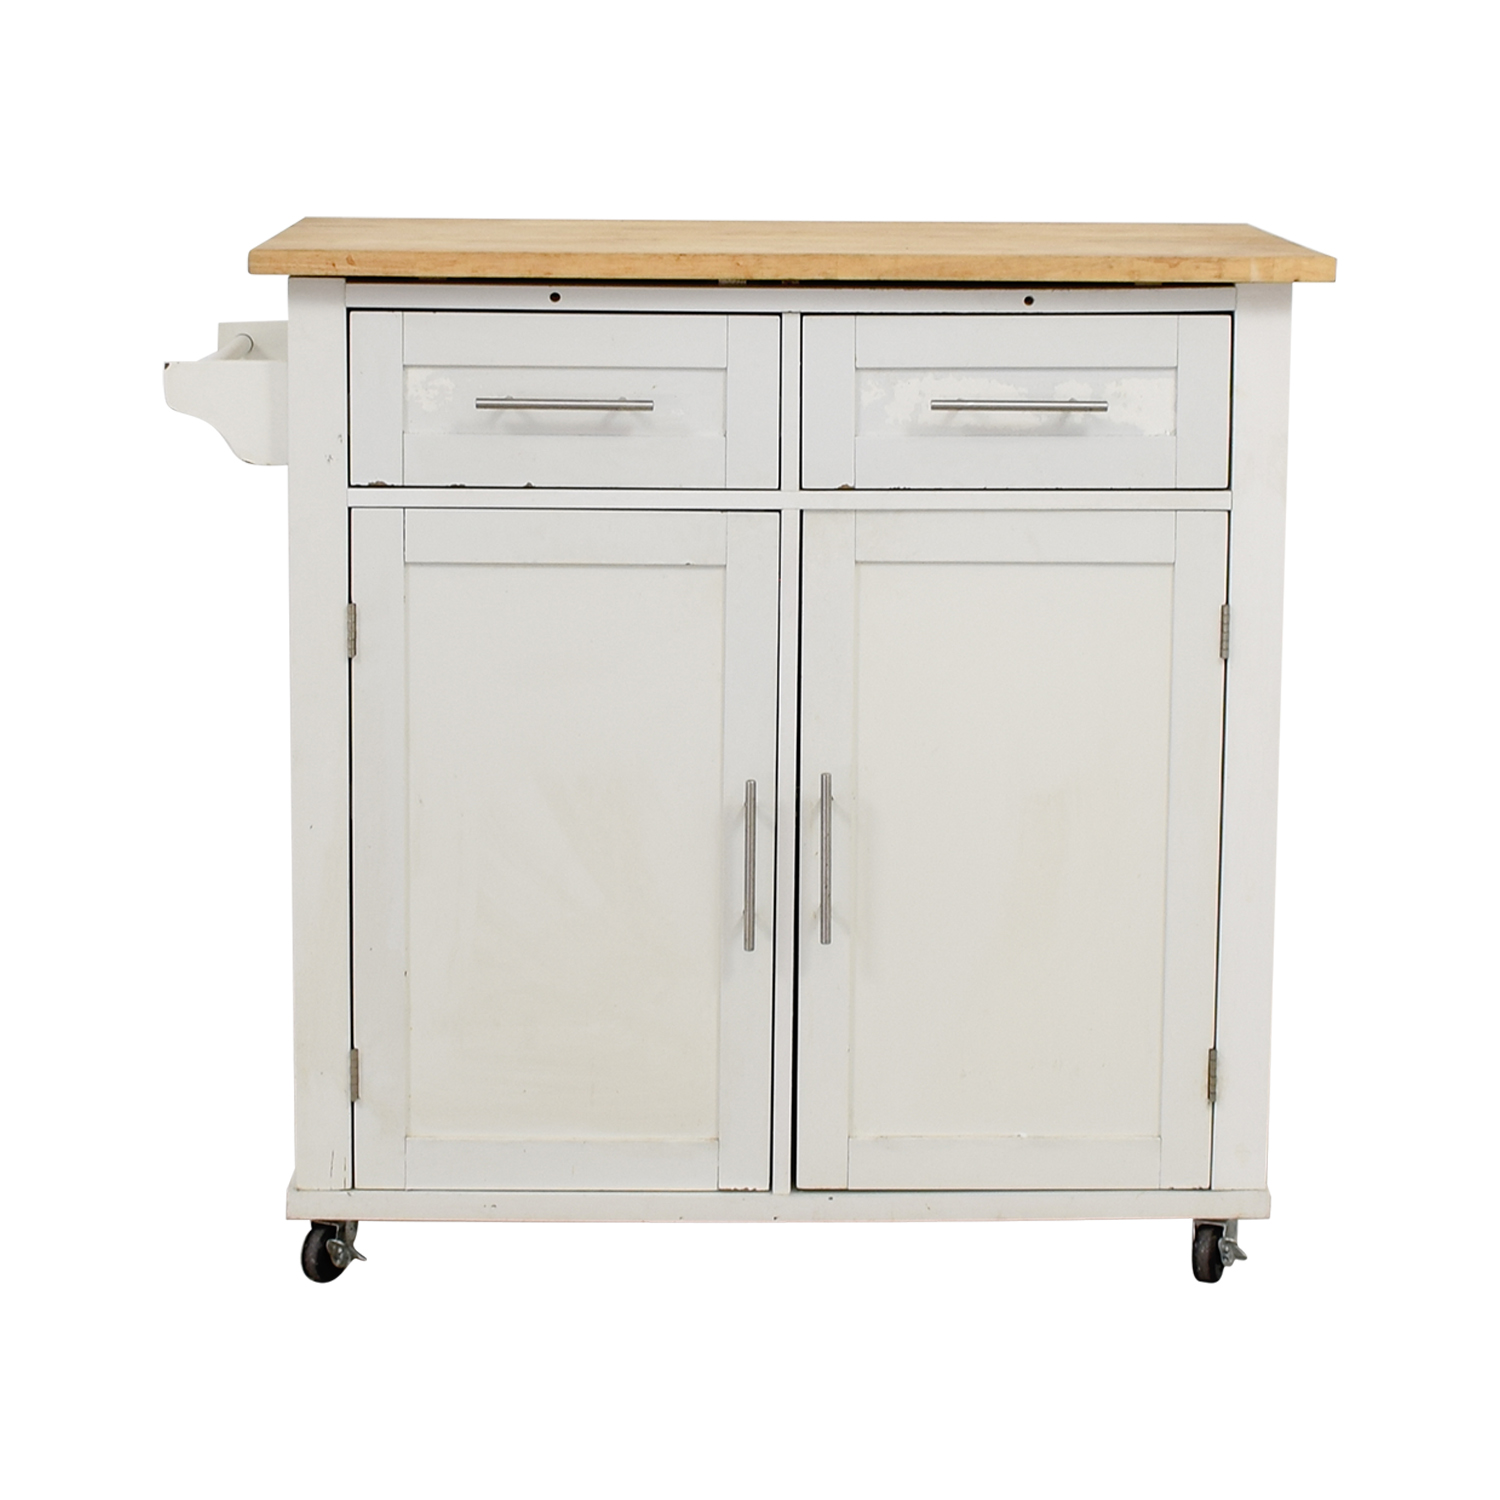 39% off - target target white kitchen island / tables